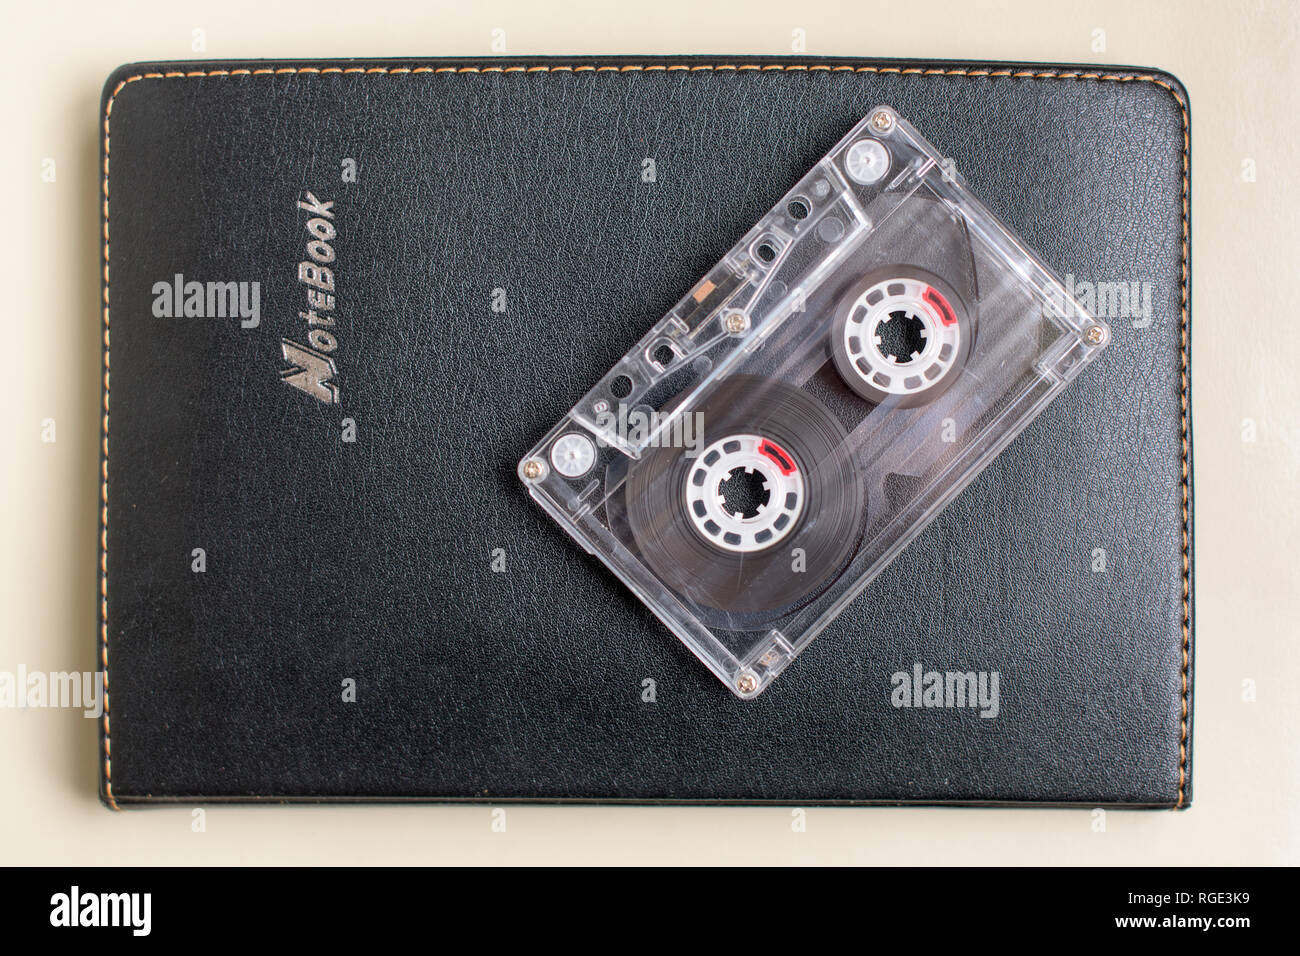 One Plastic cassette on a black notebook - Stock Image